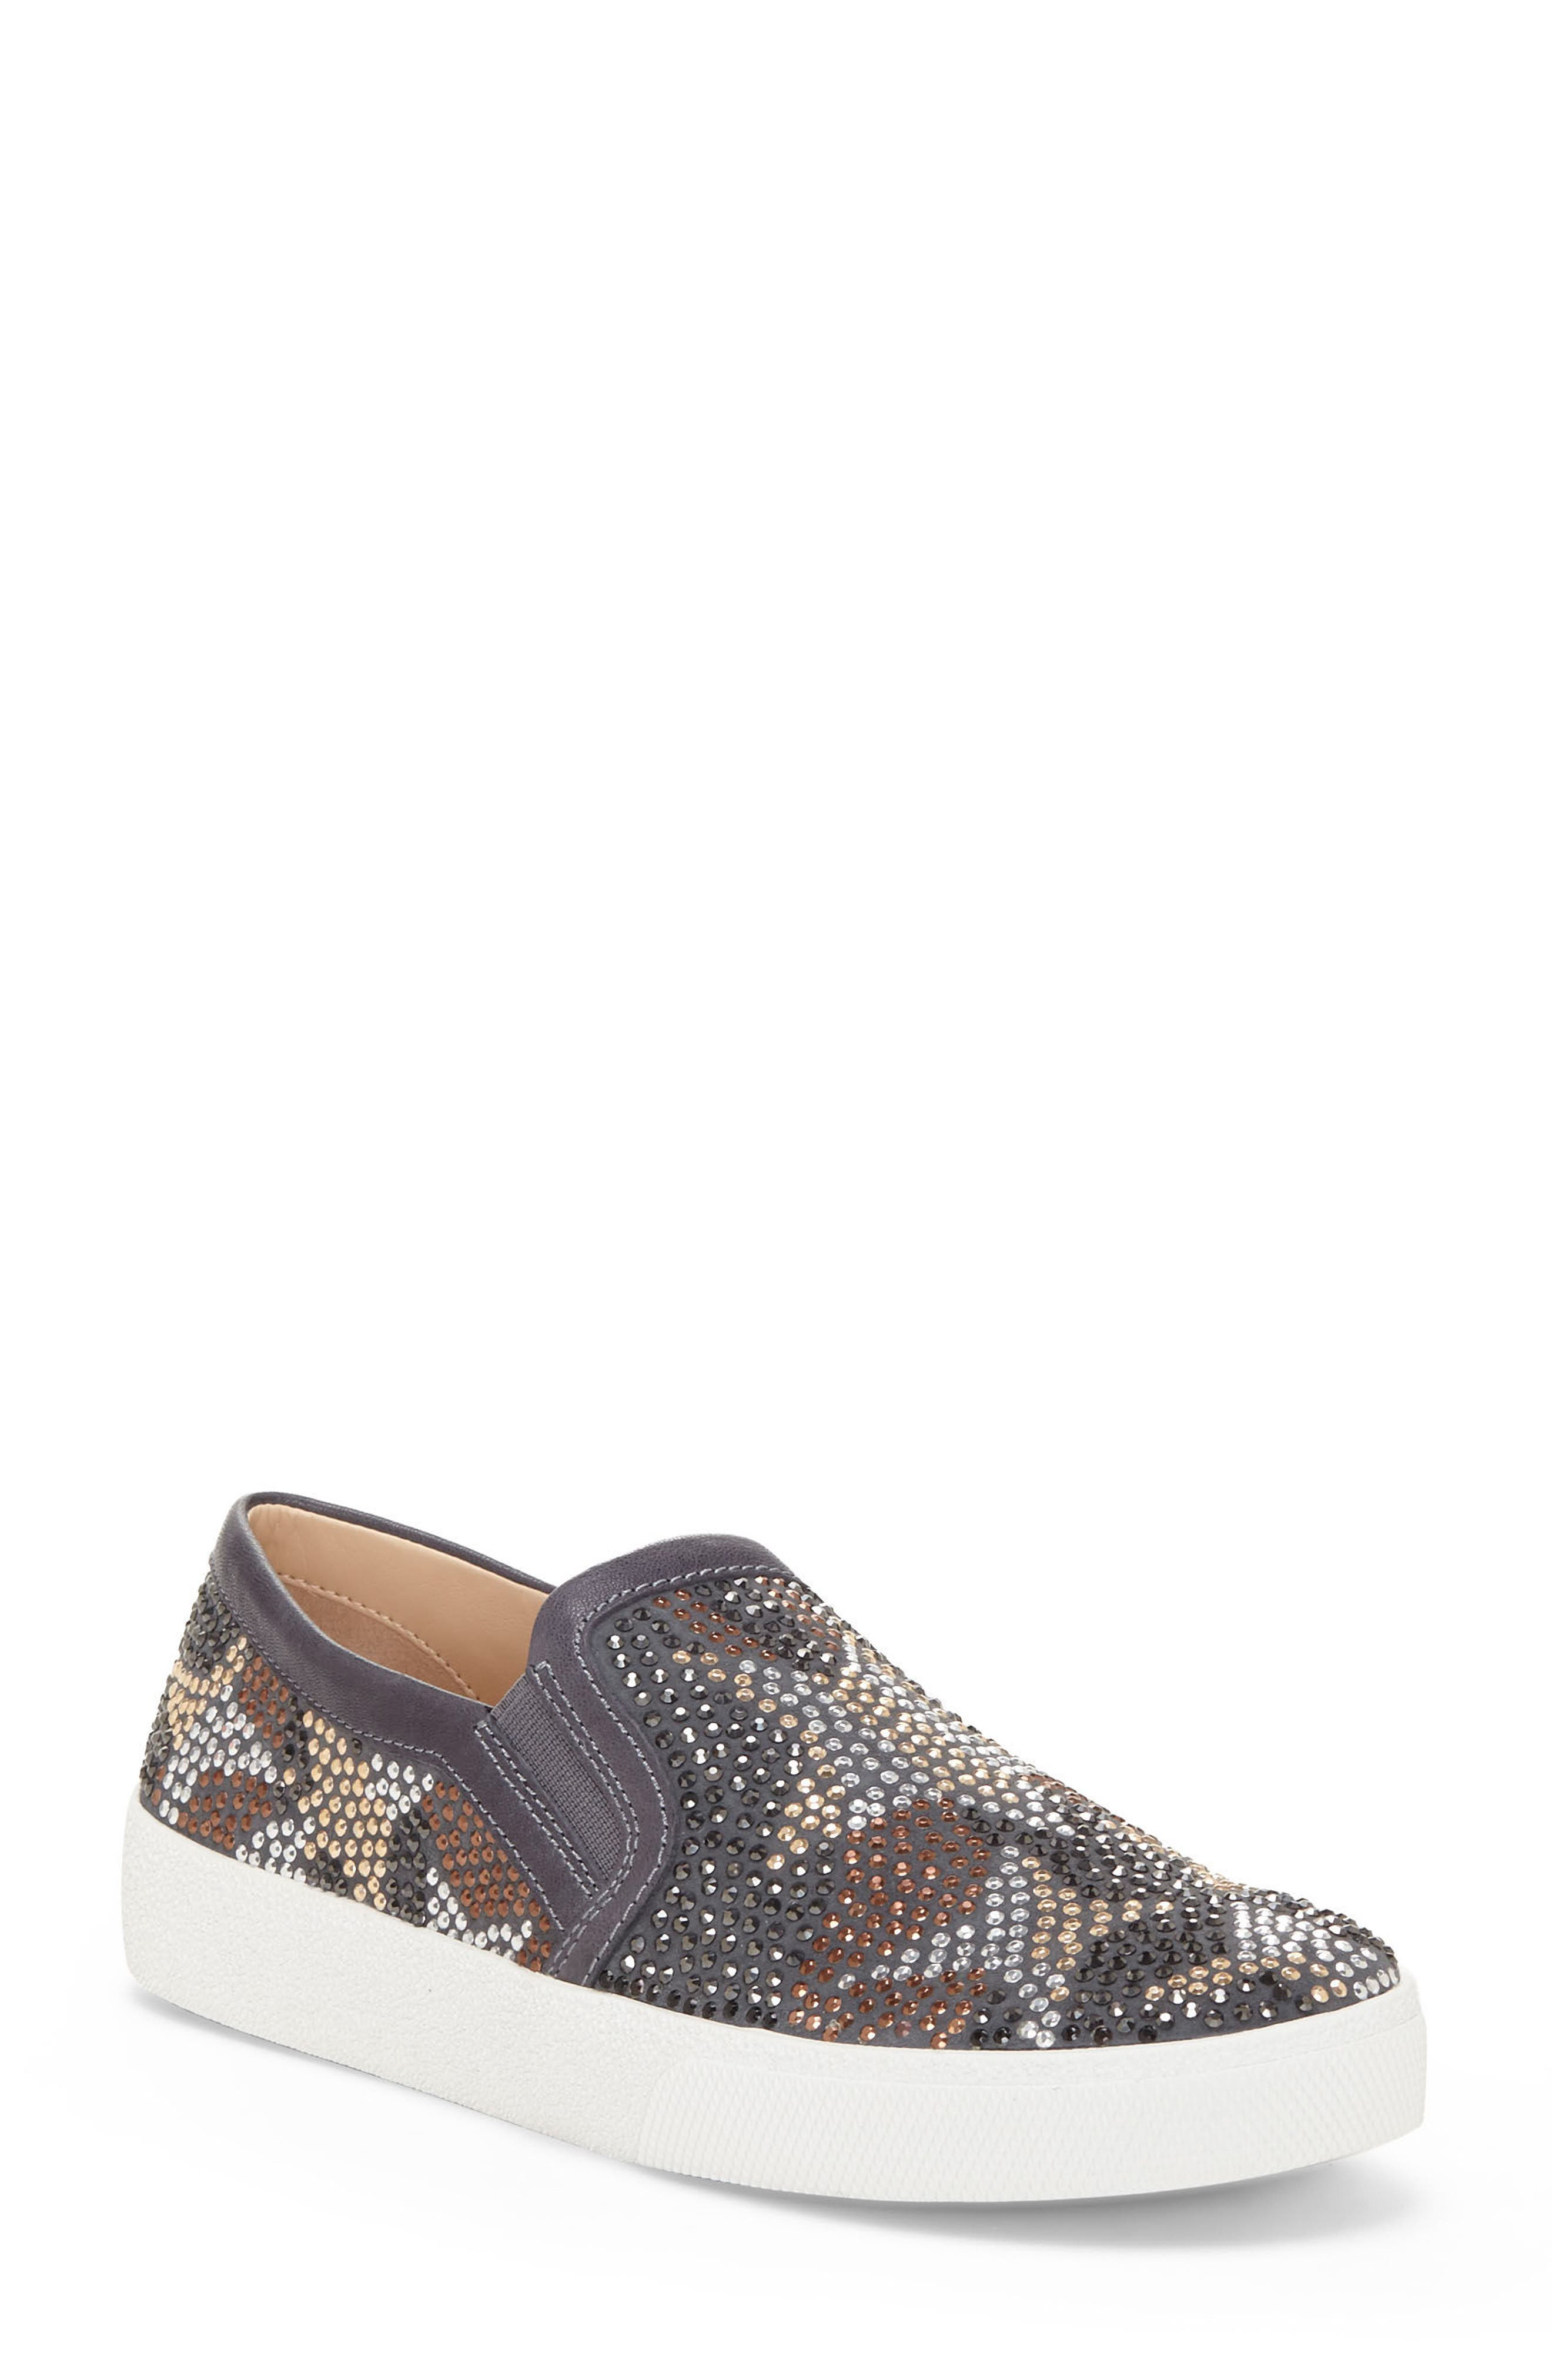 Canita Slip-On Sneaker,                         Main,                         color, Gravel Suede